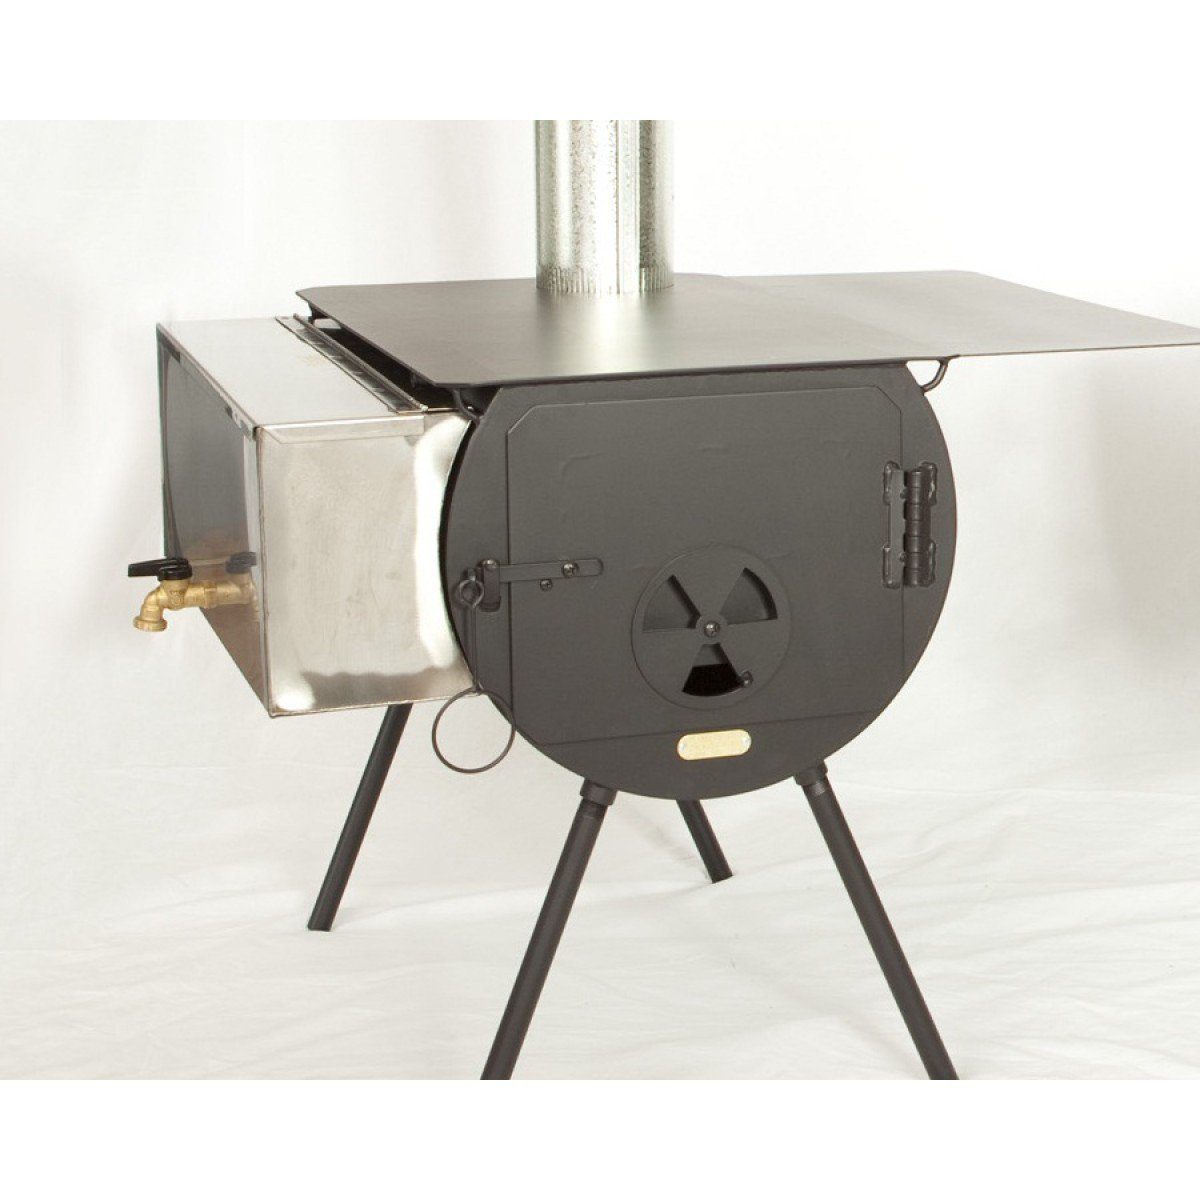 Outfitter Stove Package Cylinder Tent Stove (with Grate)